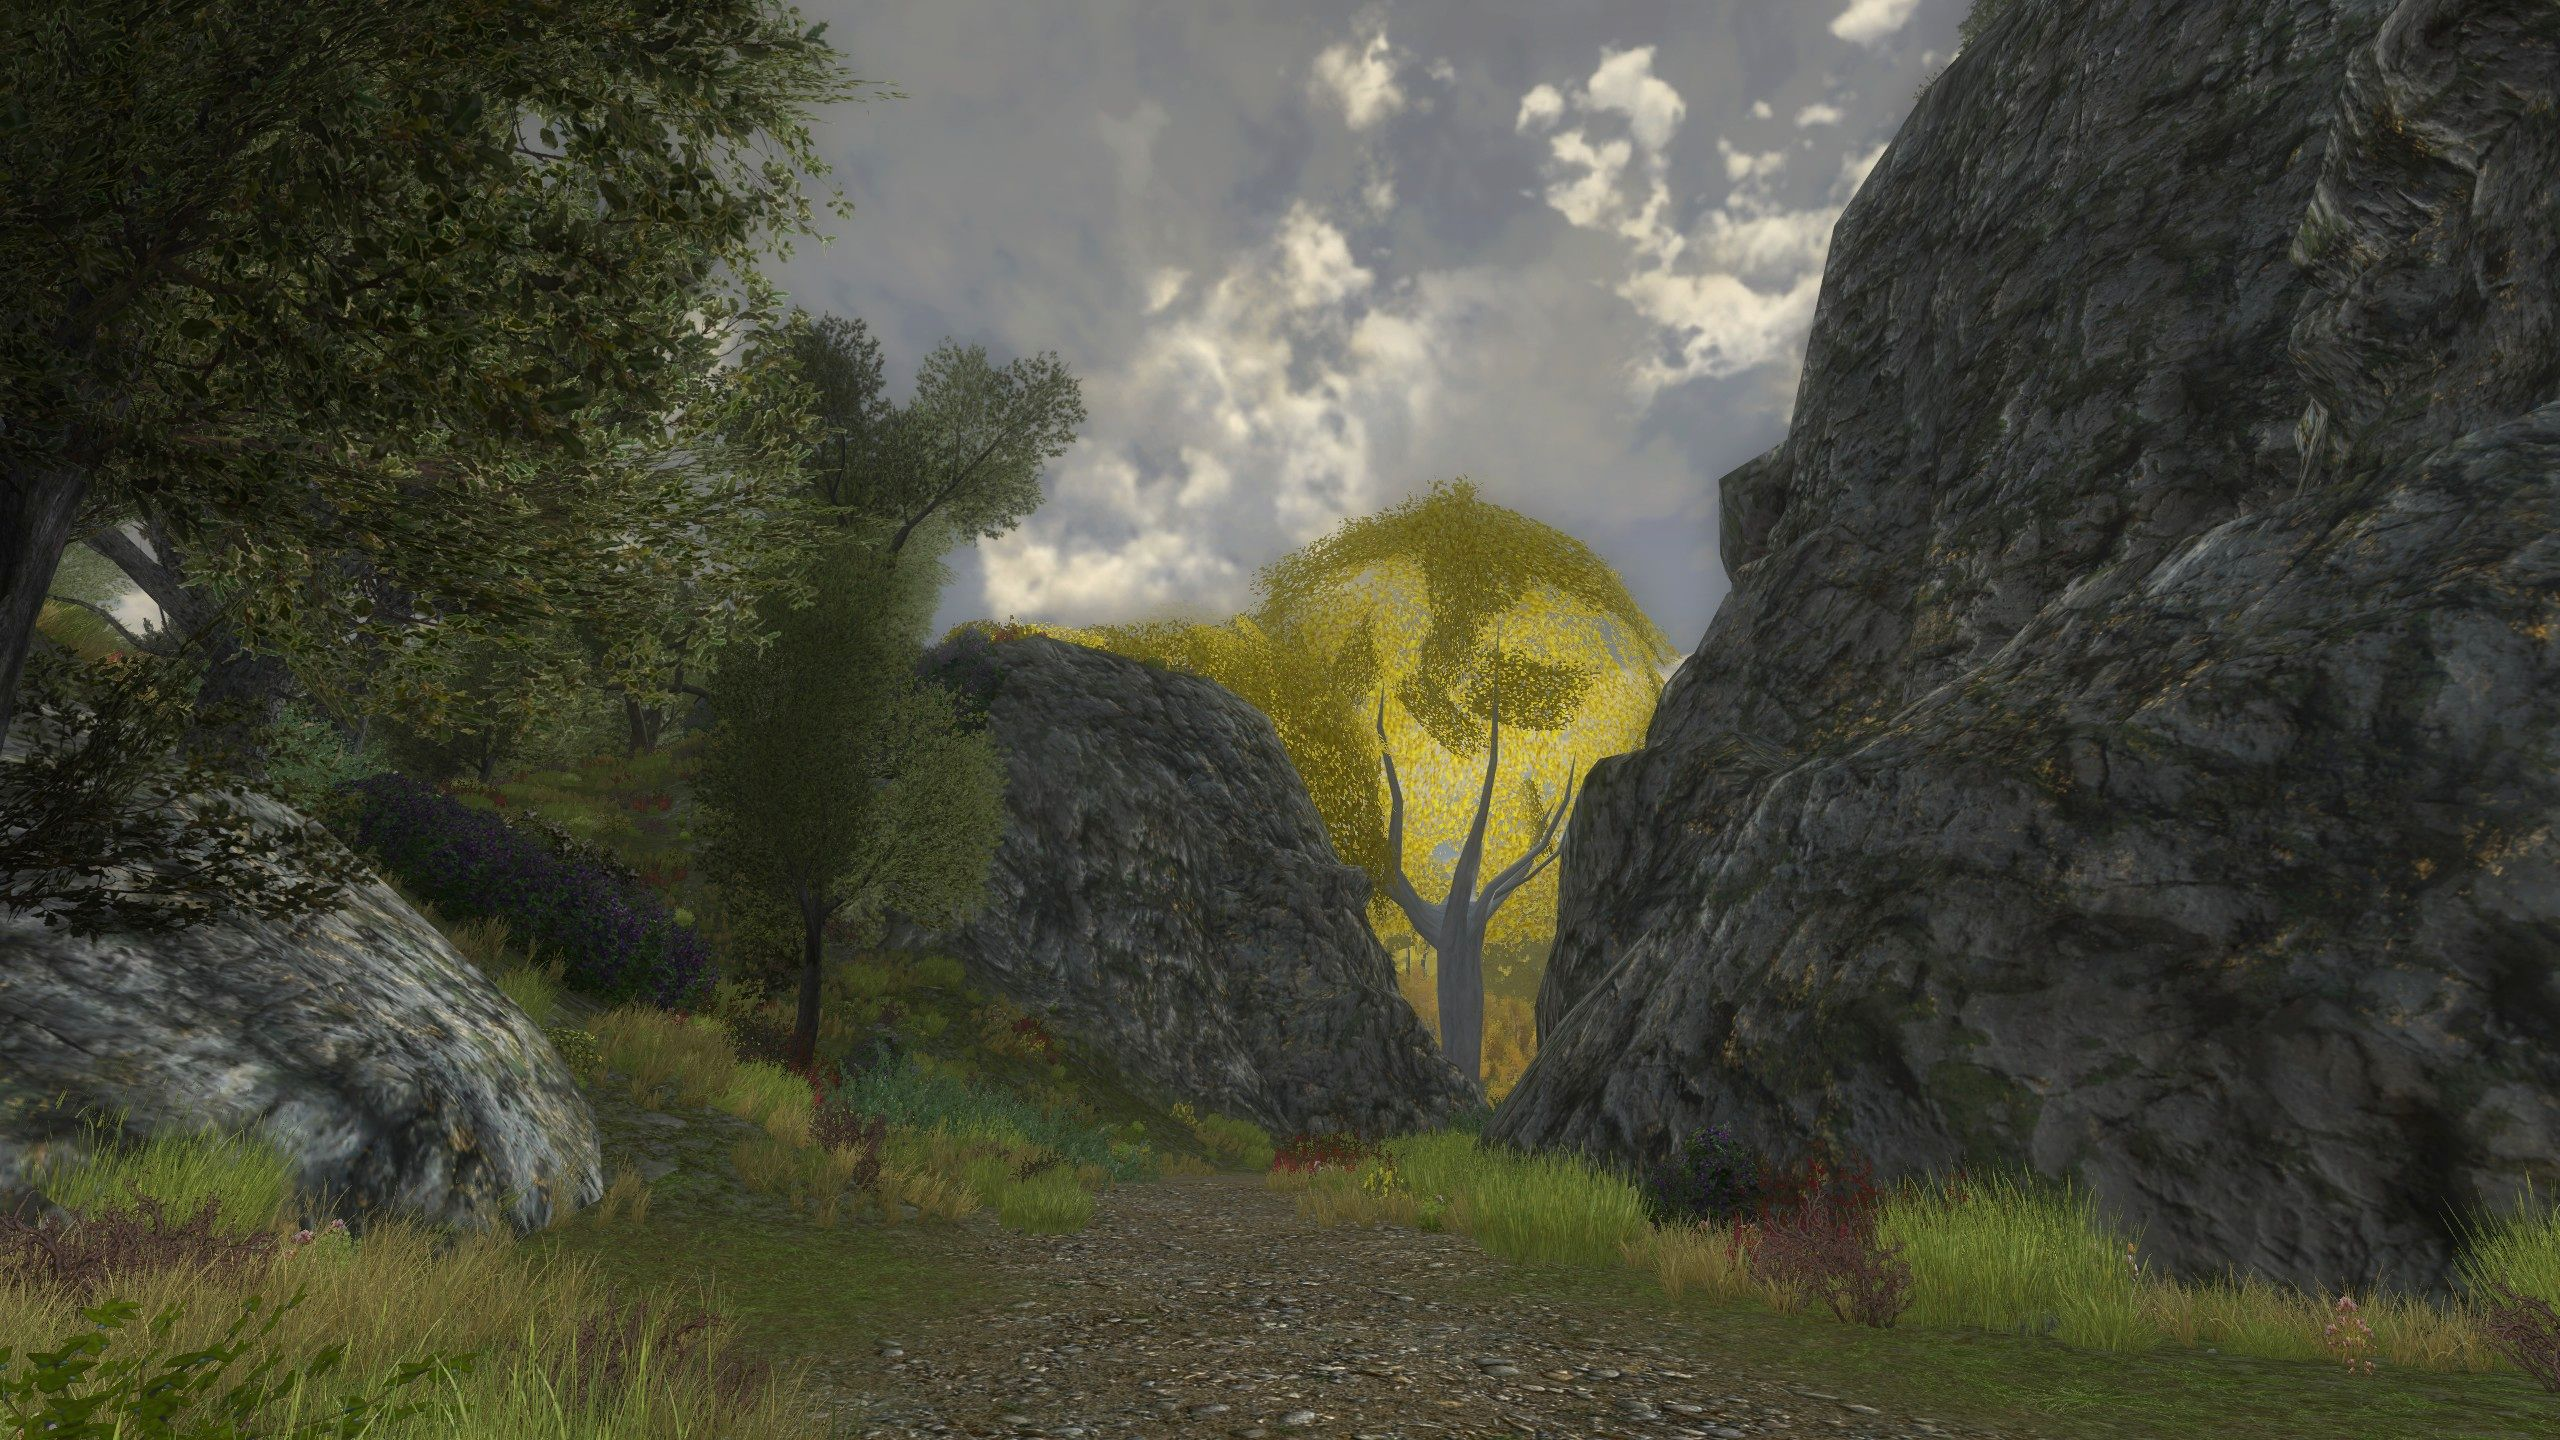 Carrock 'n roll: LOTRO U24 preview - The Vales of Anduin